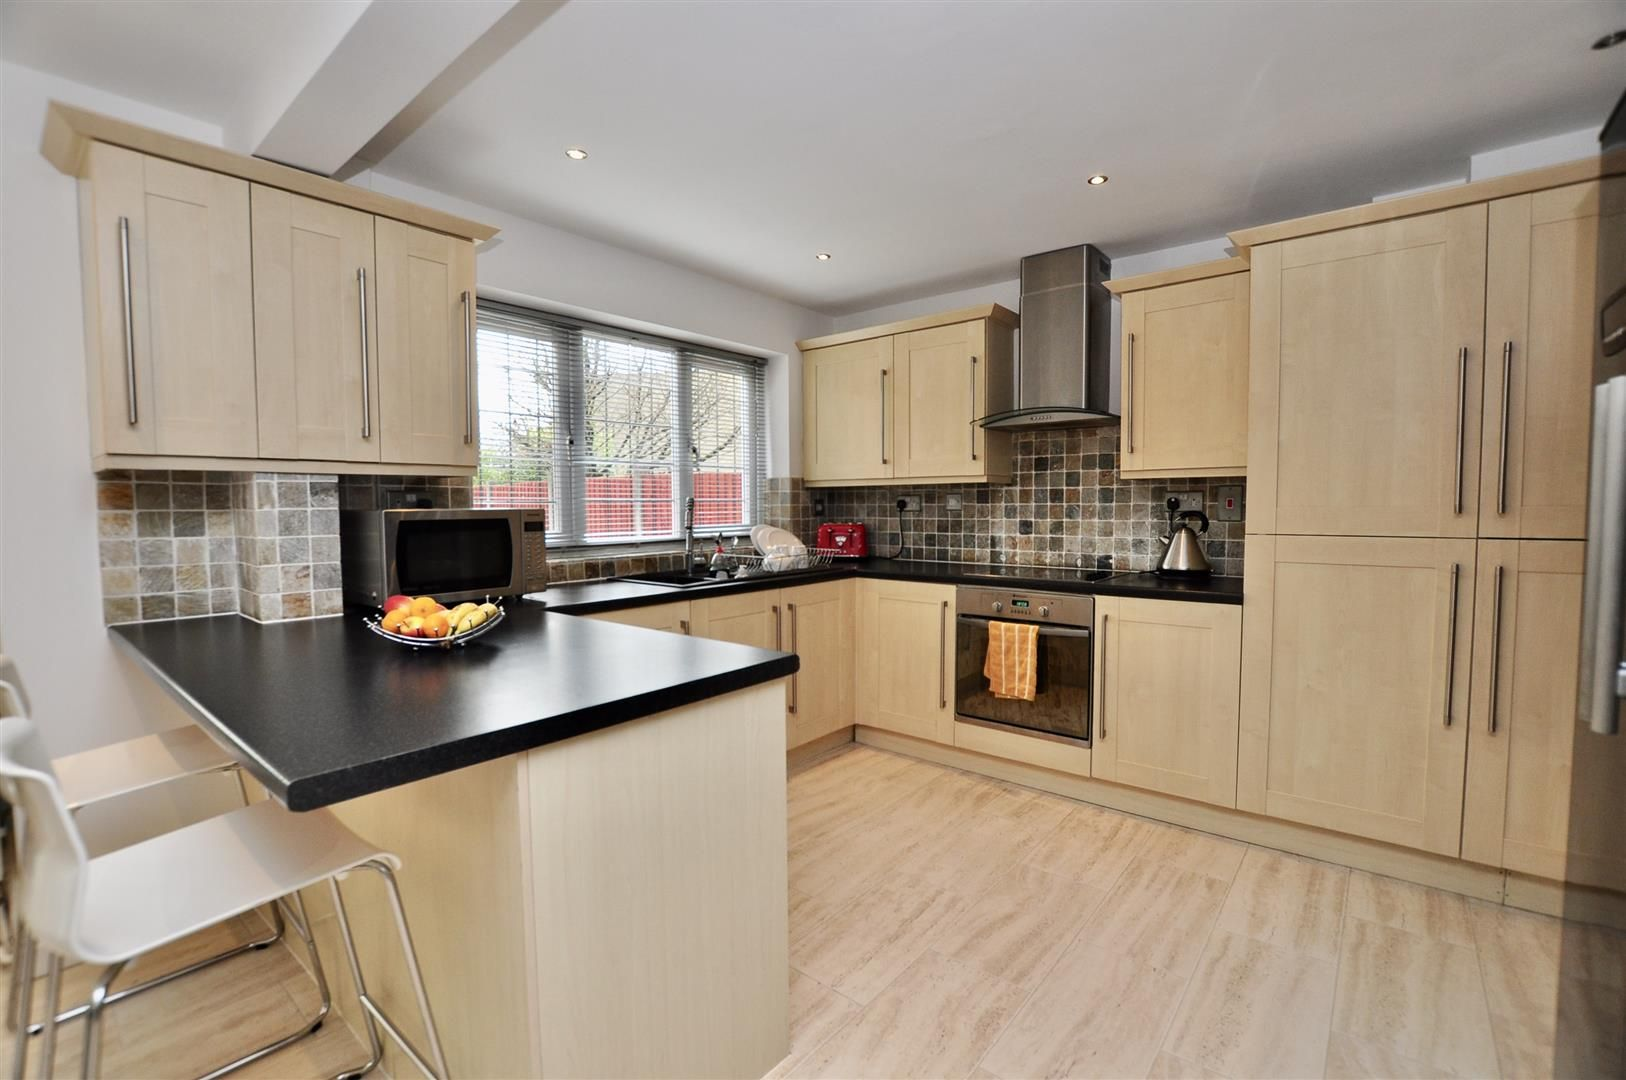 4 bed house for sale in Hagley 9